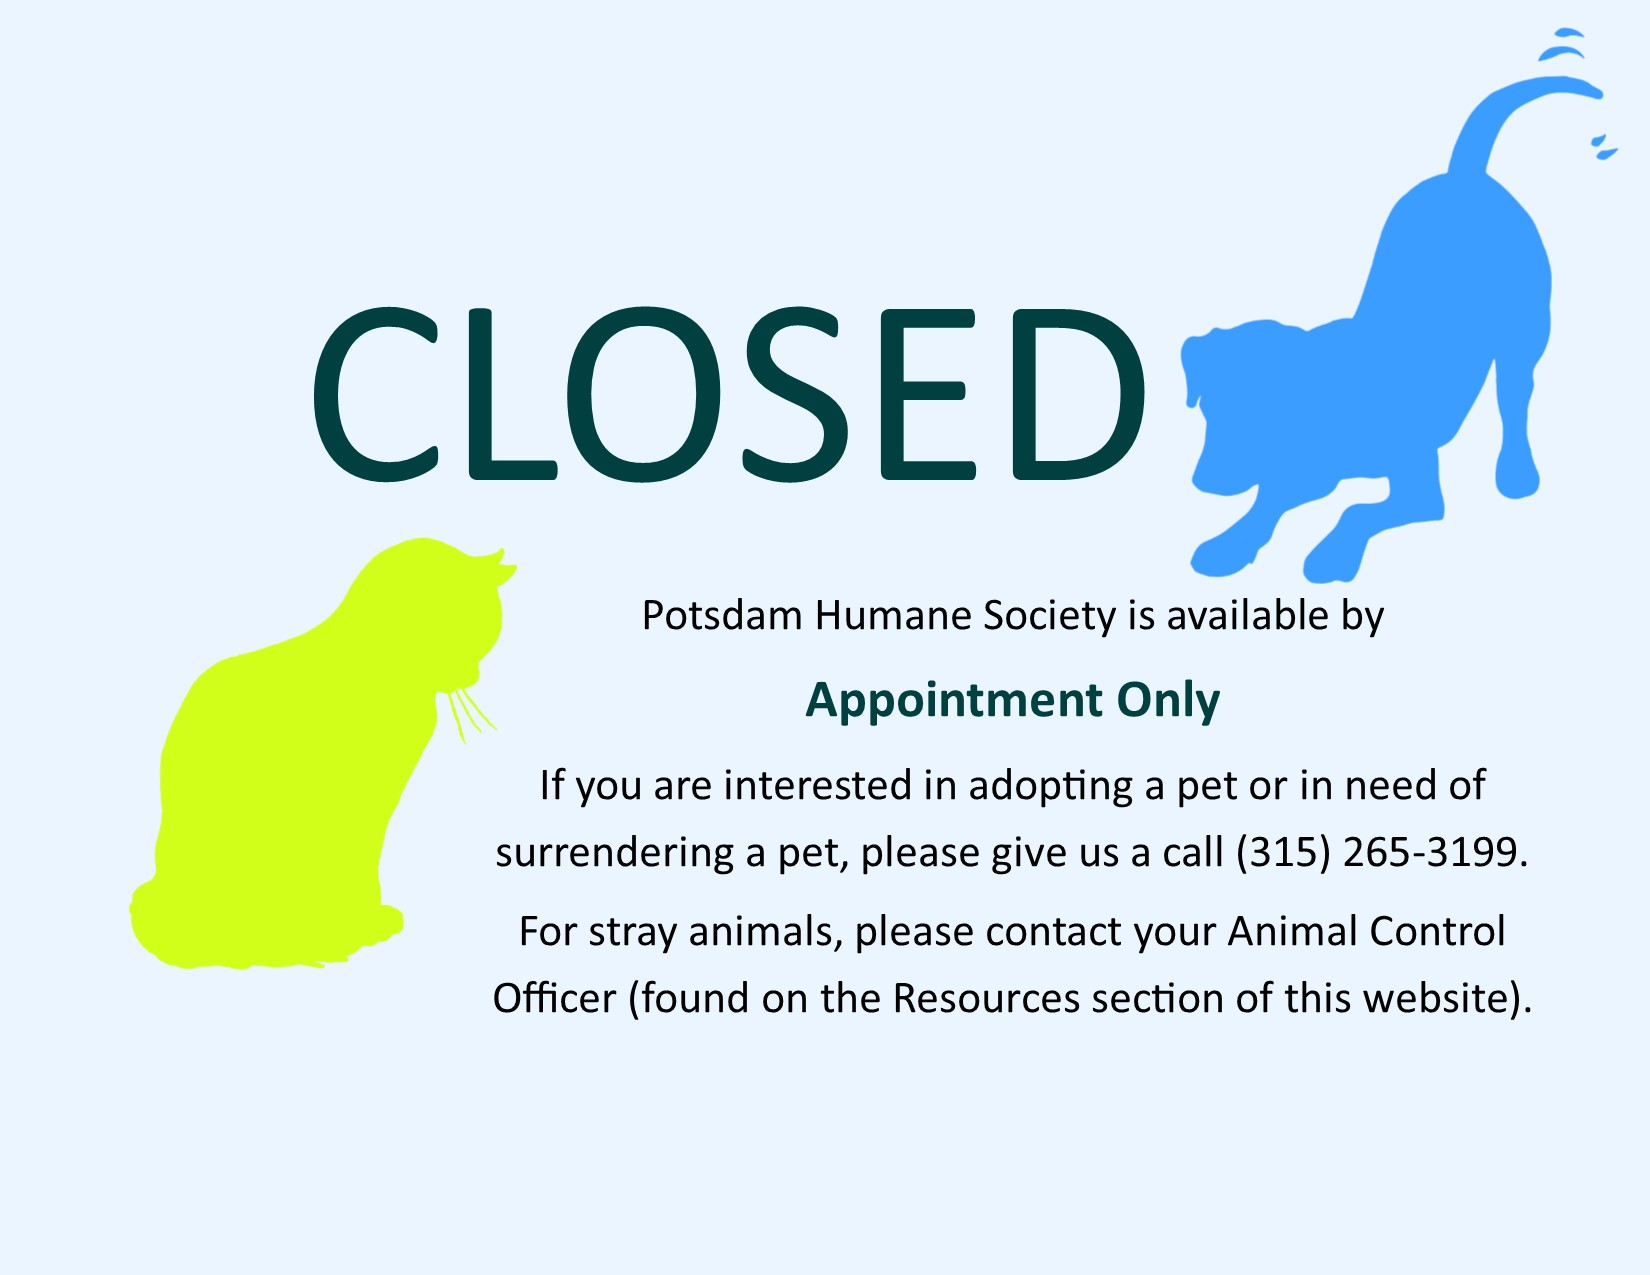 <a href='http://potsdamhumanesociety.org/wp/?p=9532'>Shelter Closed</a>